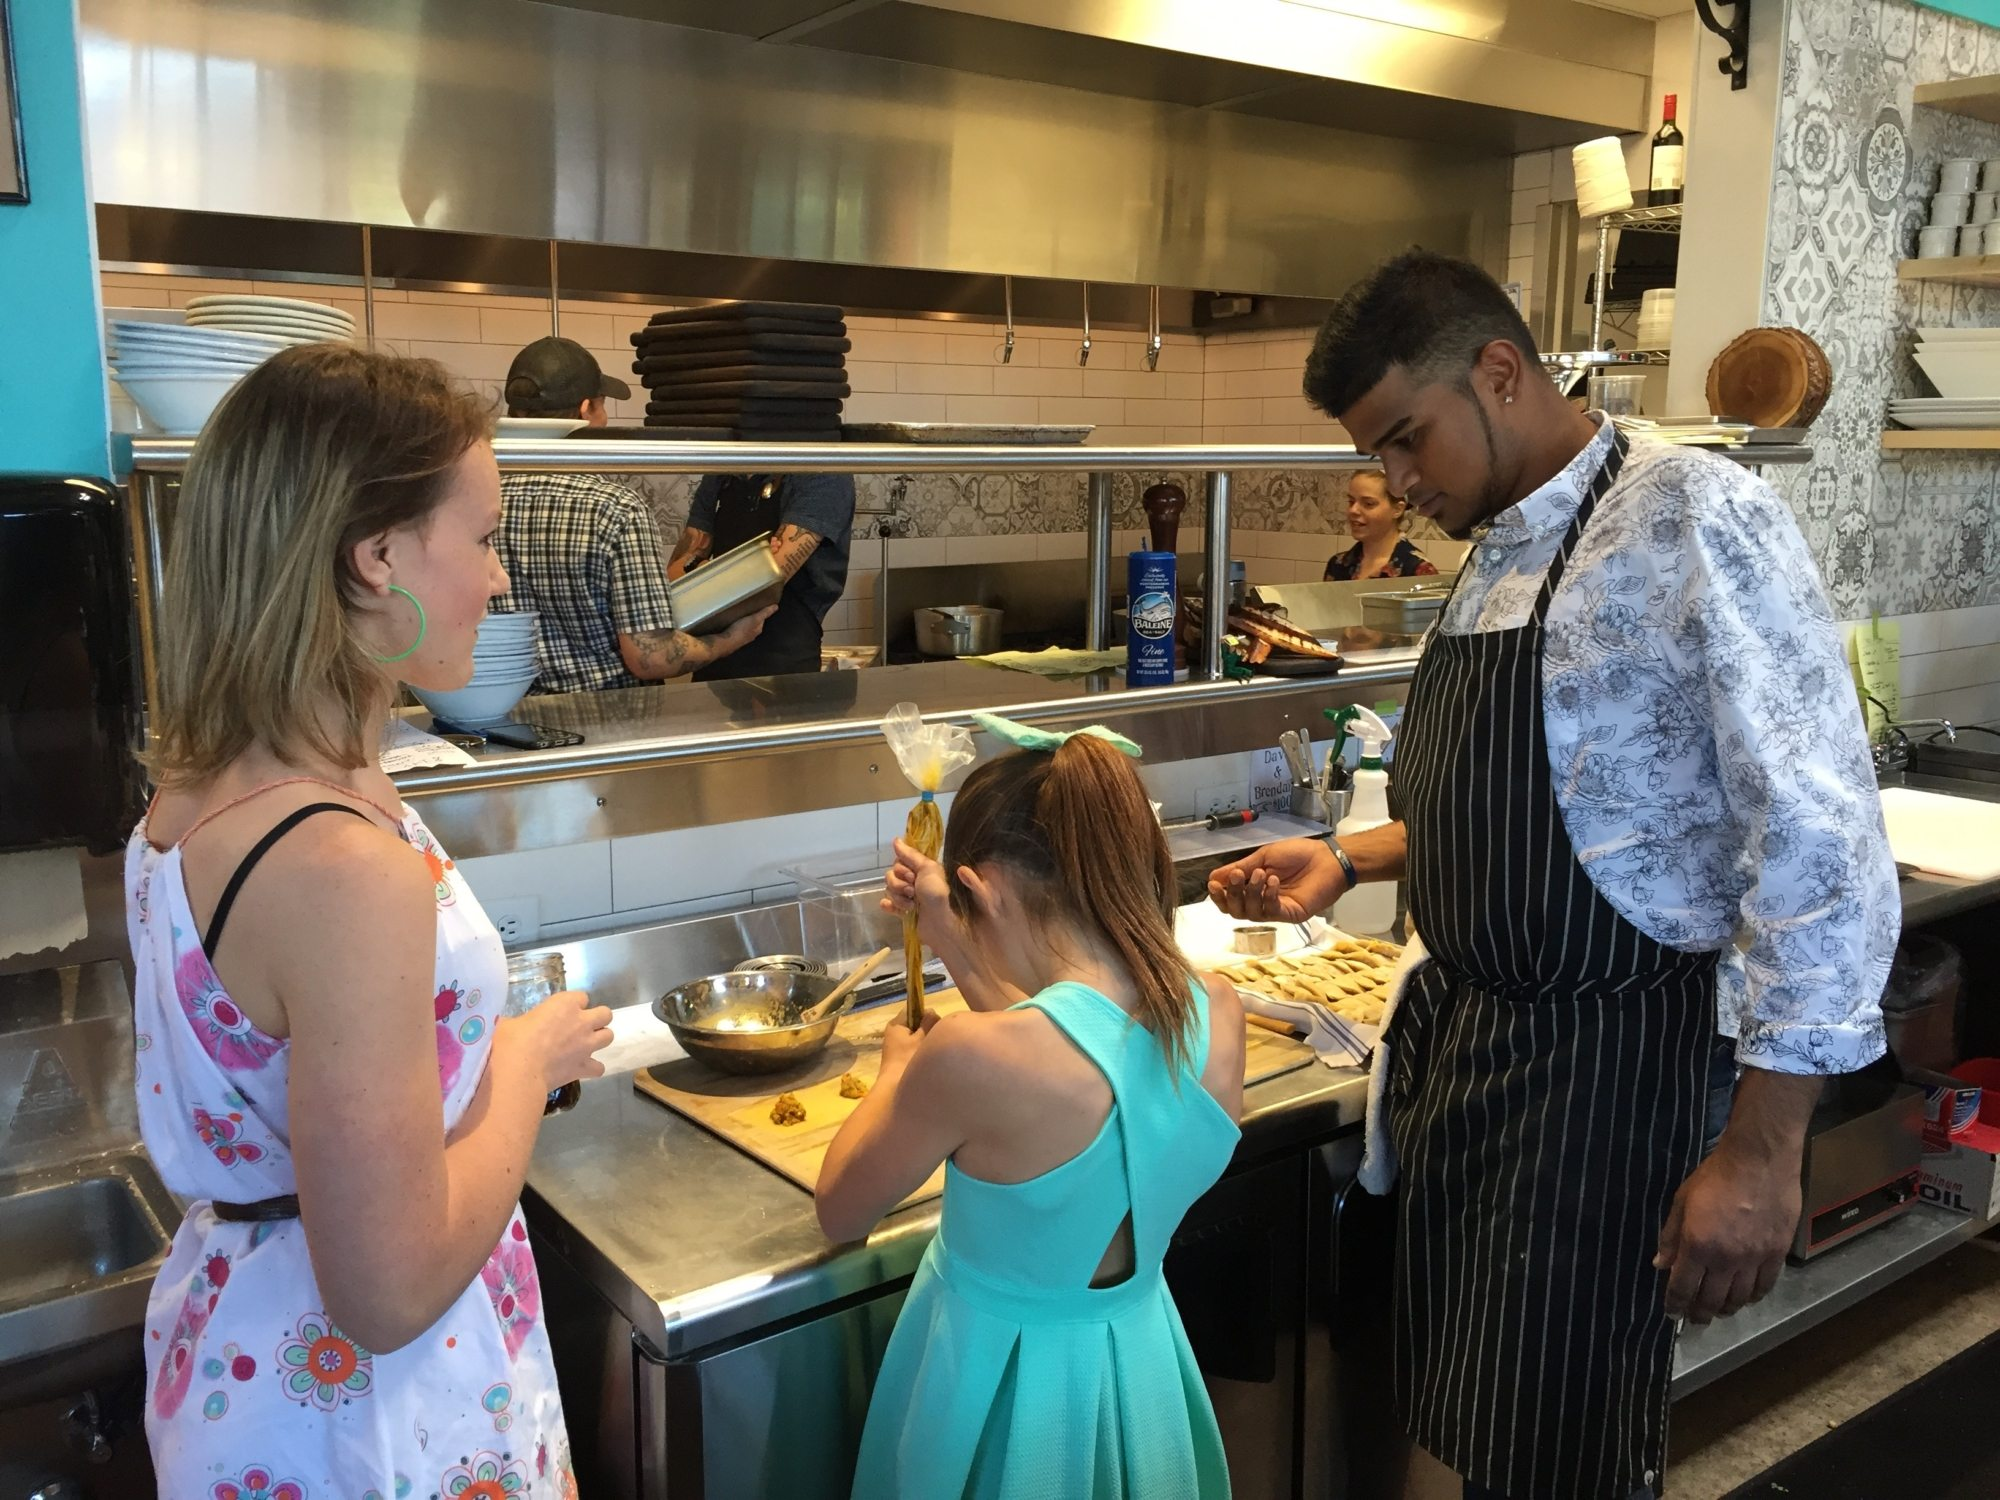 energetic denver sous chef inspired by local ingredients to appear